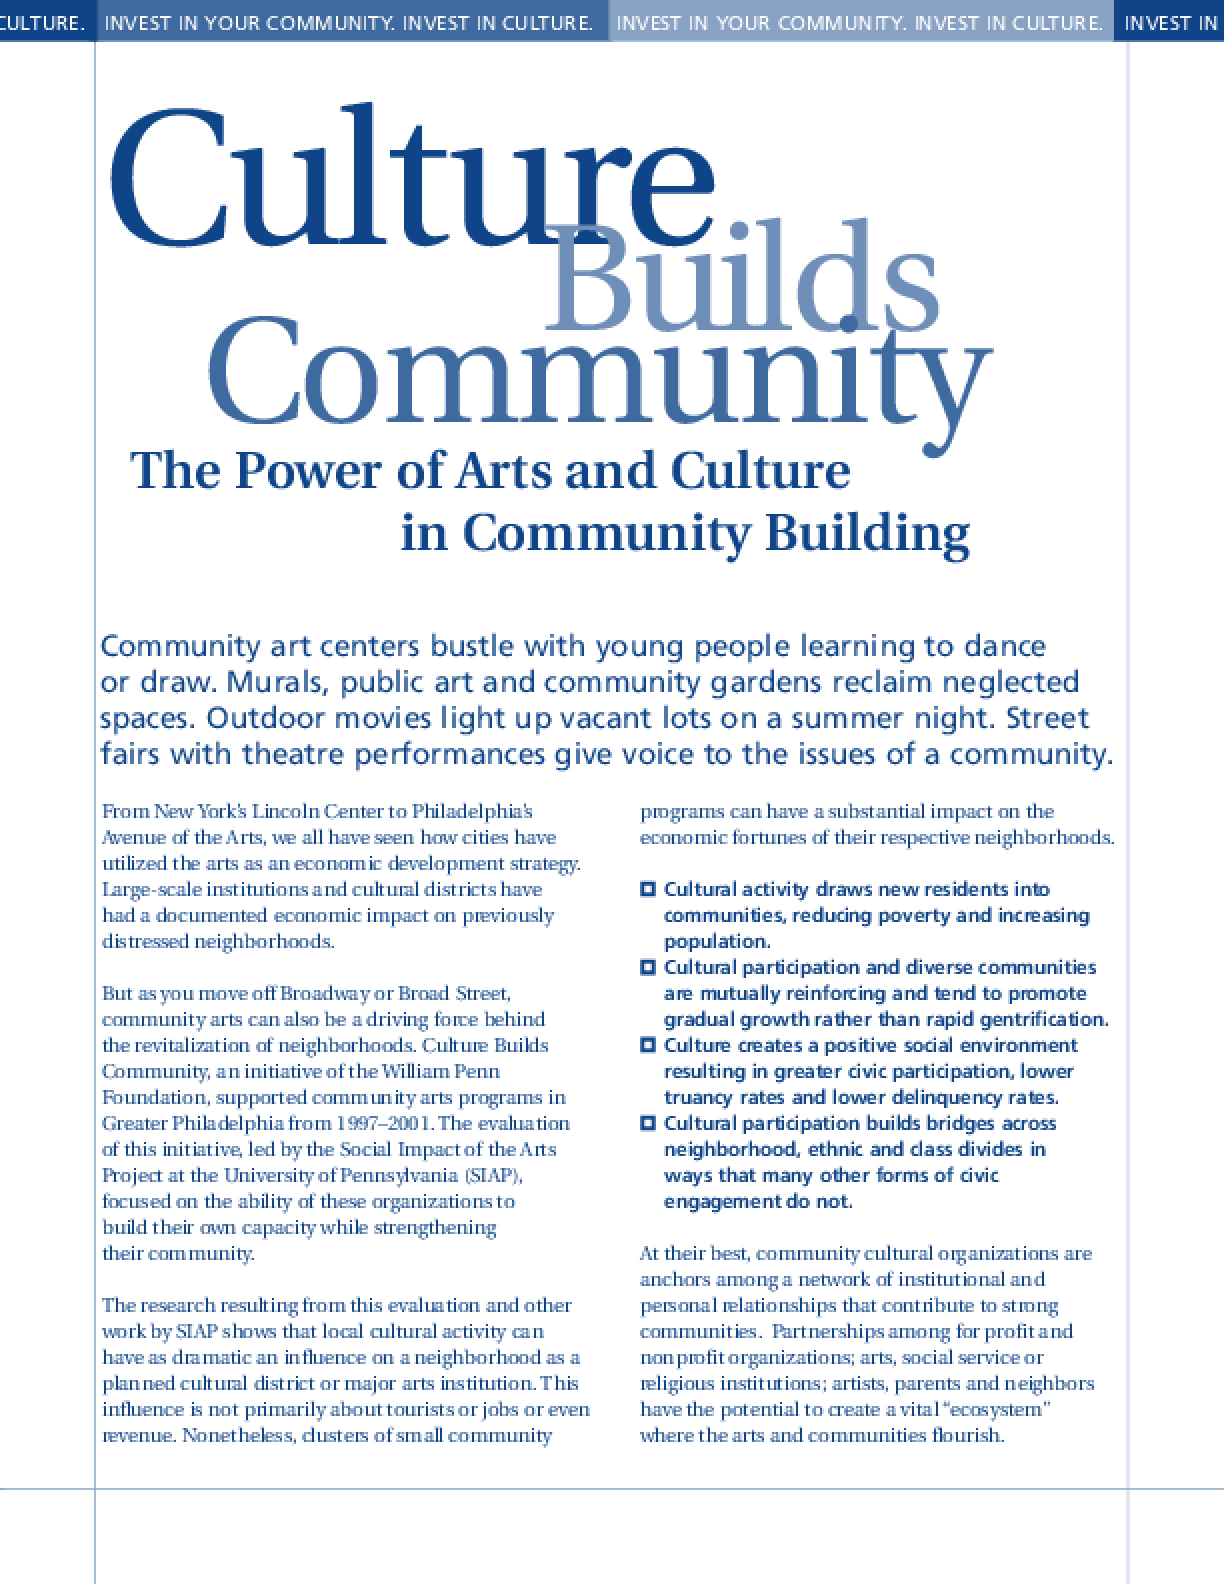 Culture Builds Communities: The Power of Arts and Culture in Community Building